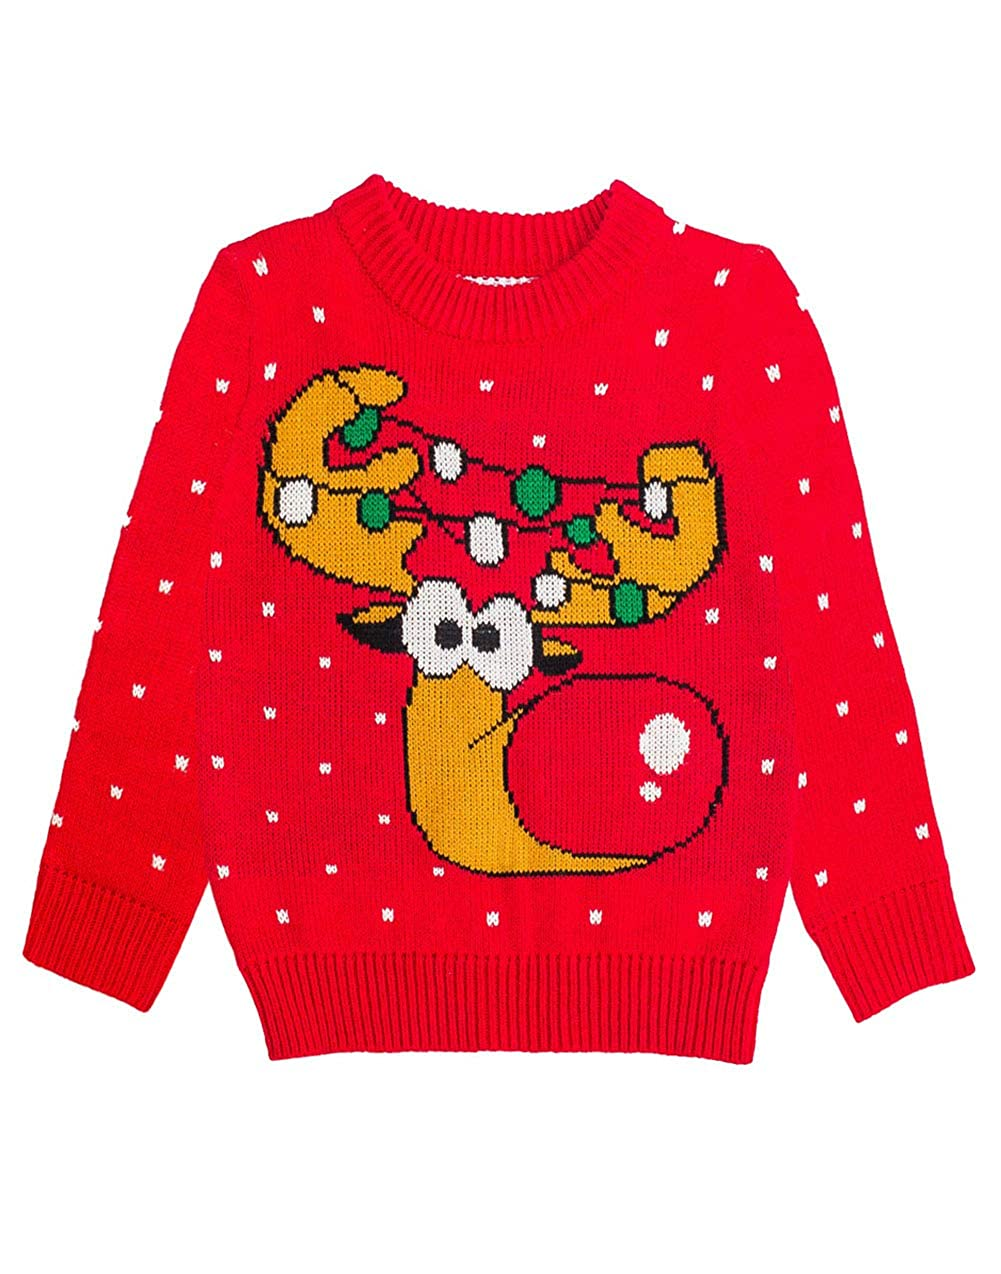 Tstars Ugly Christma Sweater Cute Funny Reindeer for Kids Boys Girls Toddler GaMPt0ag5d